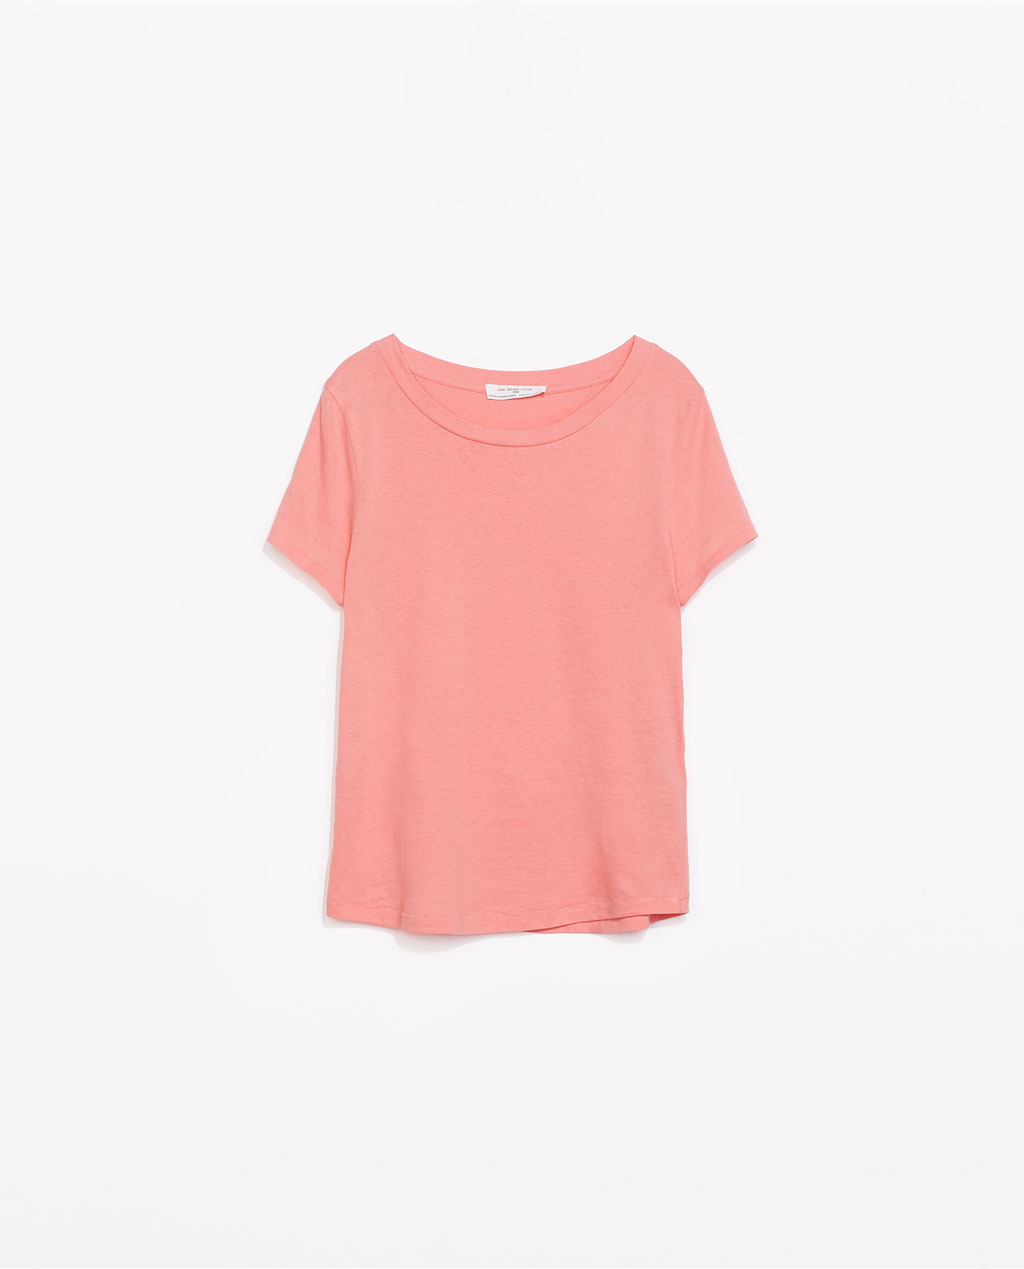 Organic Cotton T Shirt - pattern: plain; style: t-shirt; predominant colour: pink; occasions: casual, holiday; length: standard; neckline: scoop; fibres: cotton - 100%; fit: loose; sleeve length: short sleeve; sleeve style: standard; pattern type: fabric; texture group: jersey - stretchy/drapey; trends: sorbet shades; season: s/s 2014